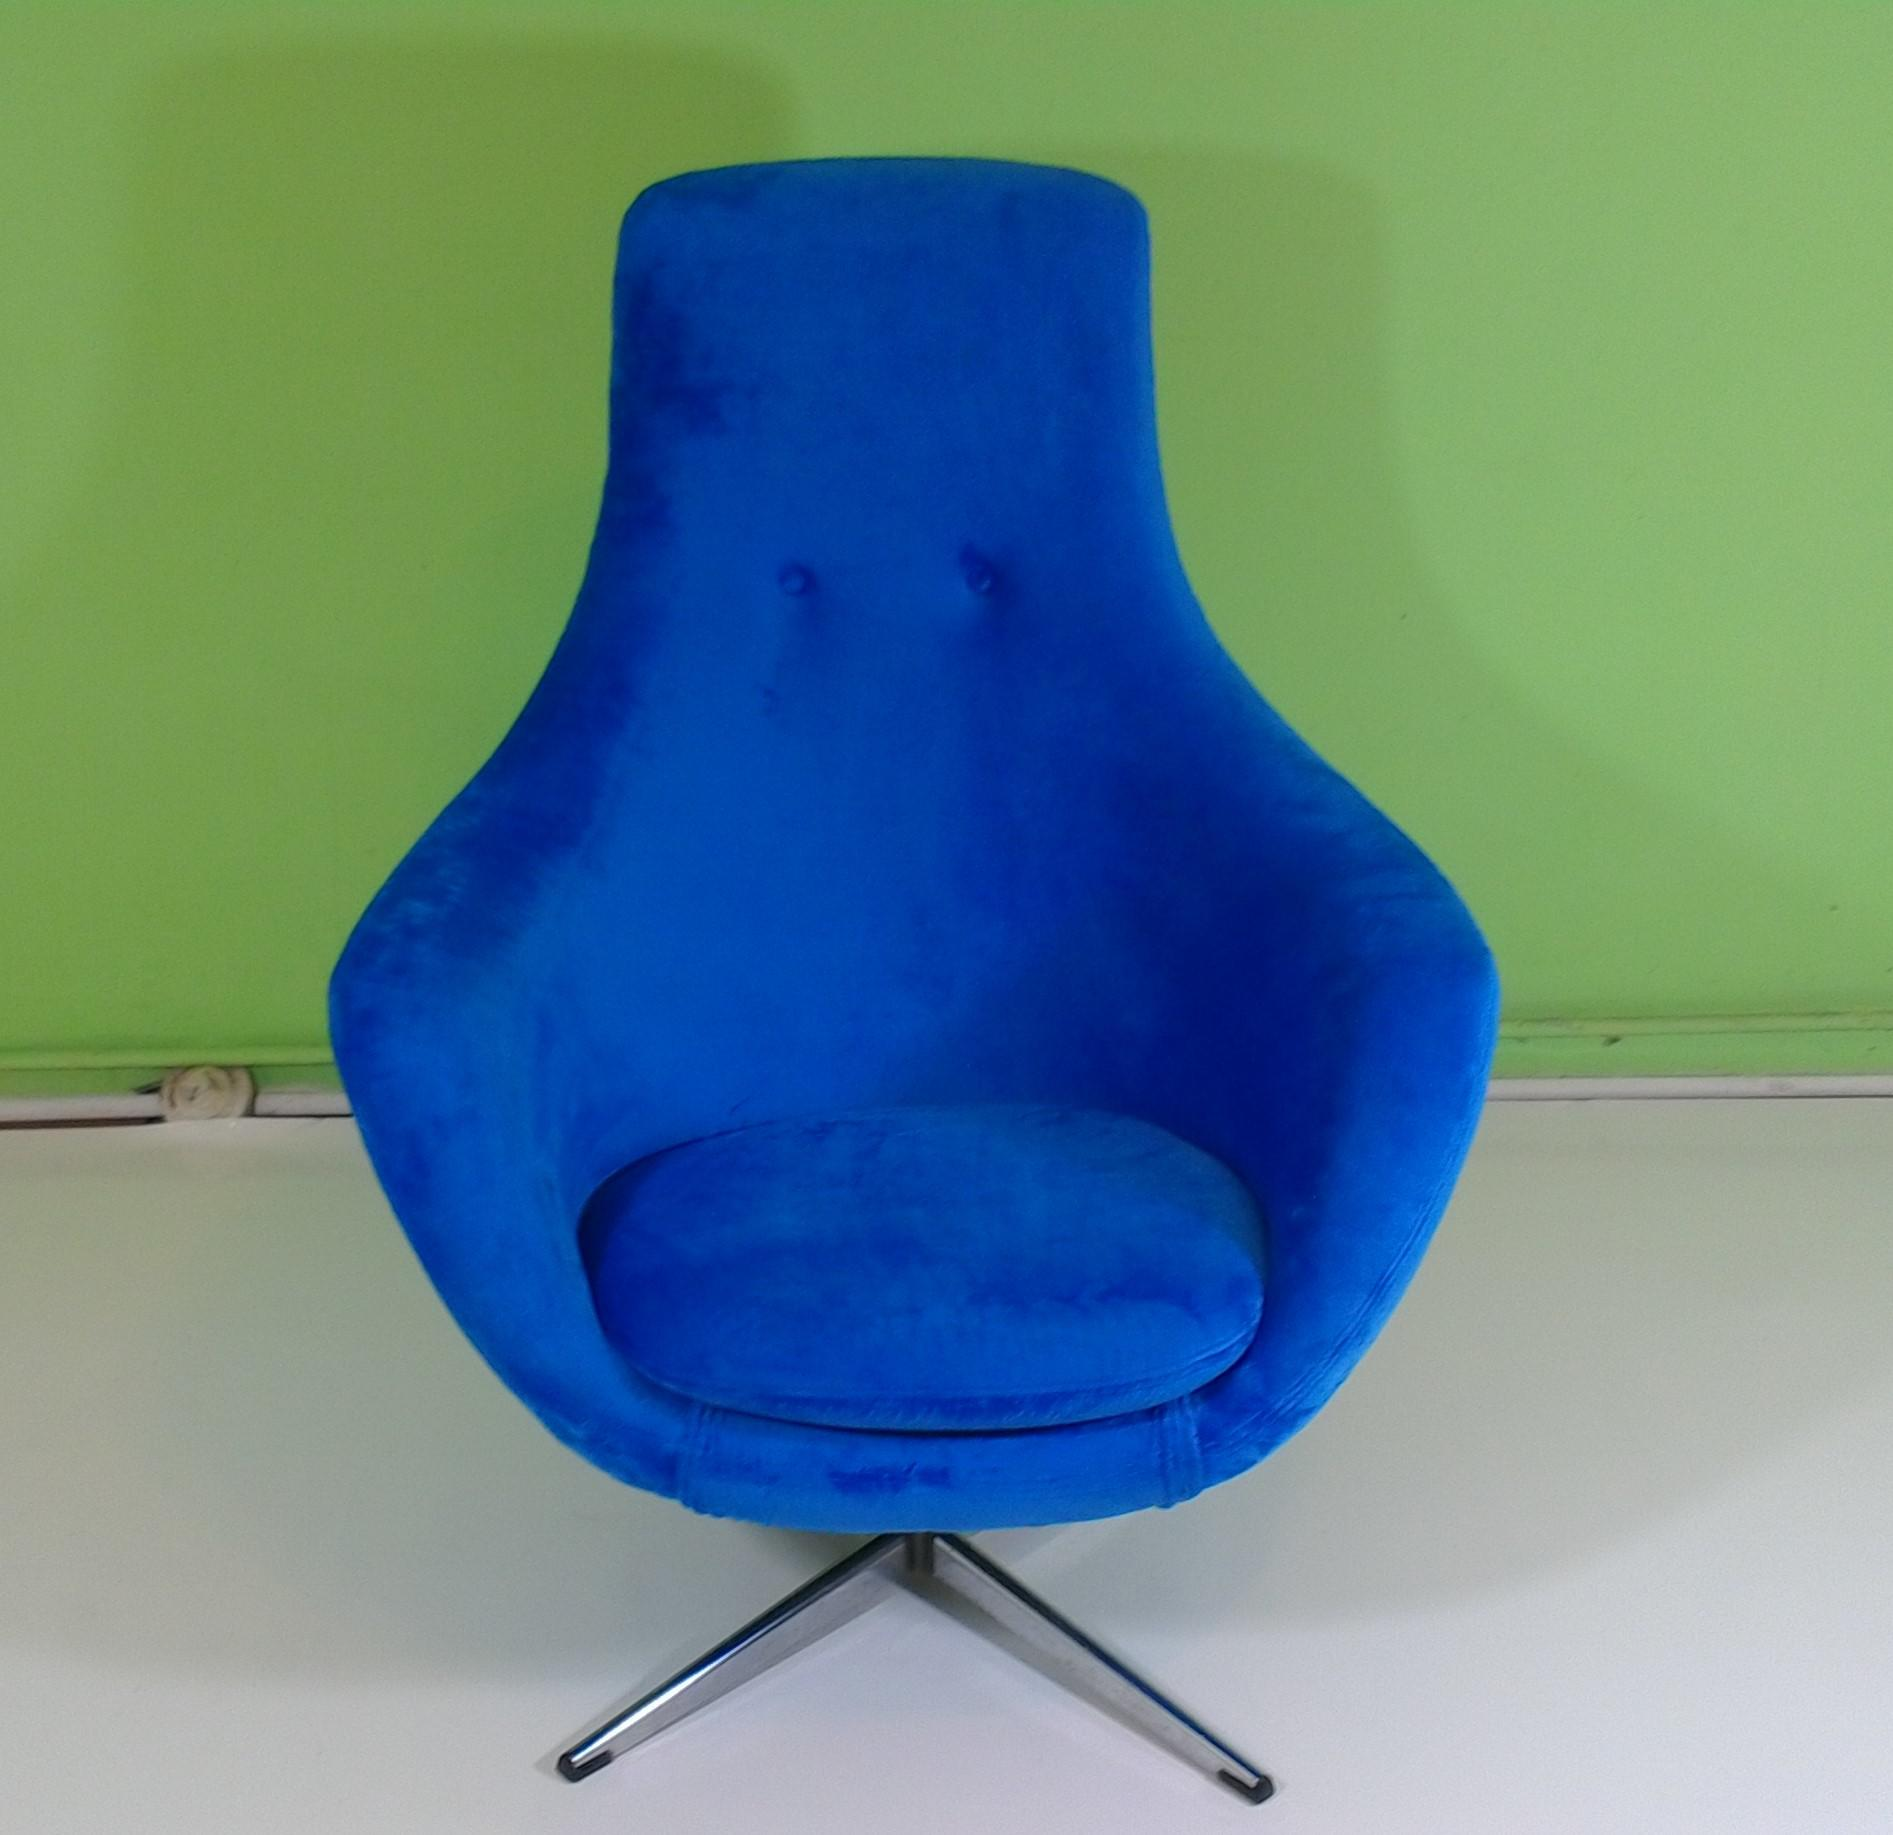 This Is A Vintage Chair From The 70s Newly Reupholstered In A Bright Blue  Velvet.